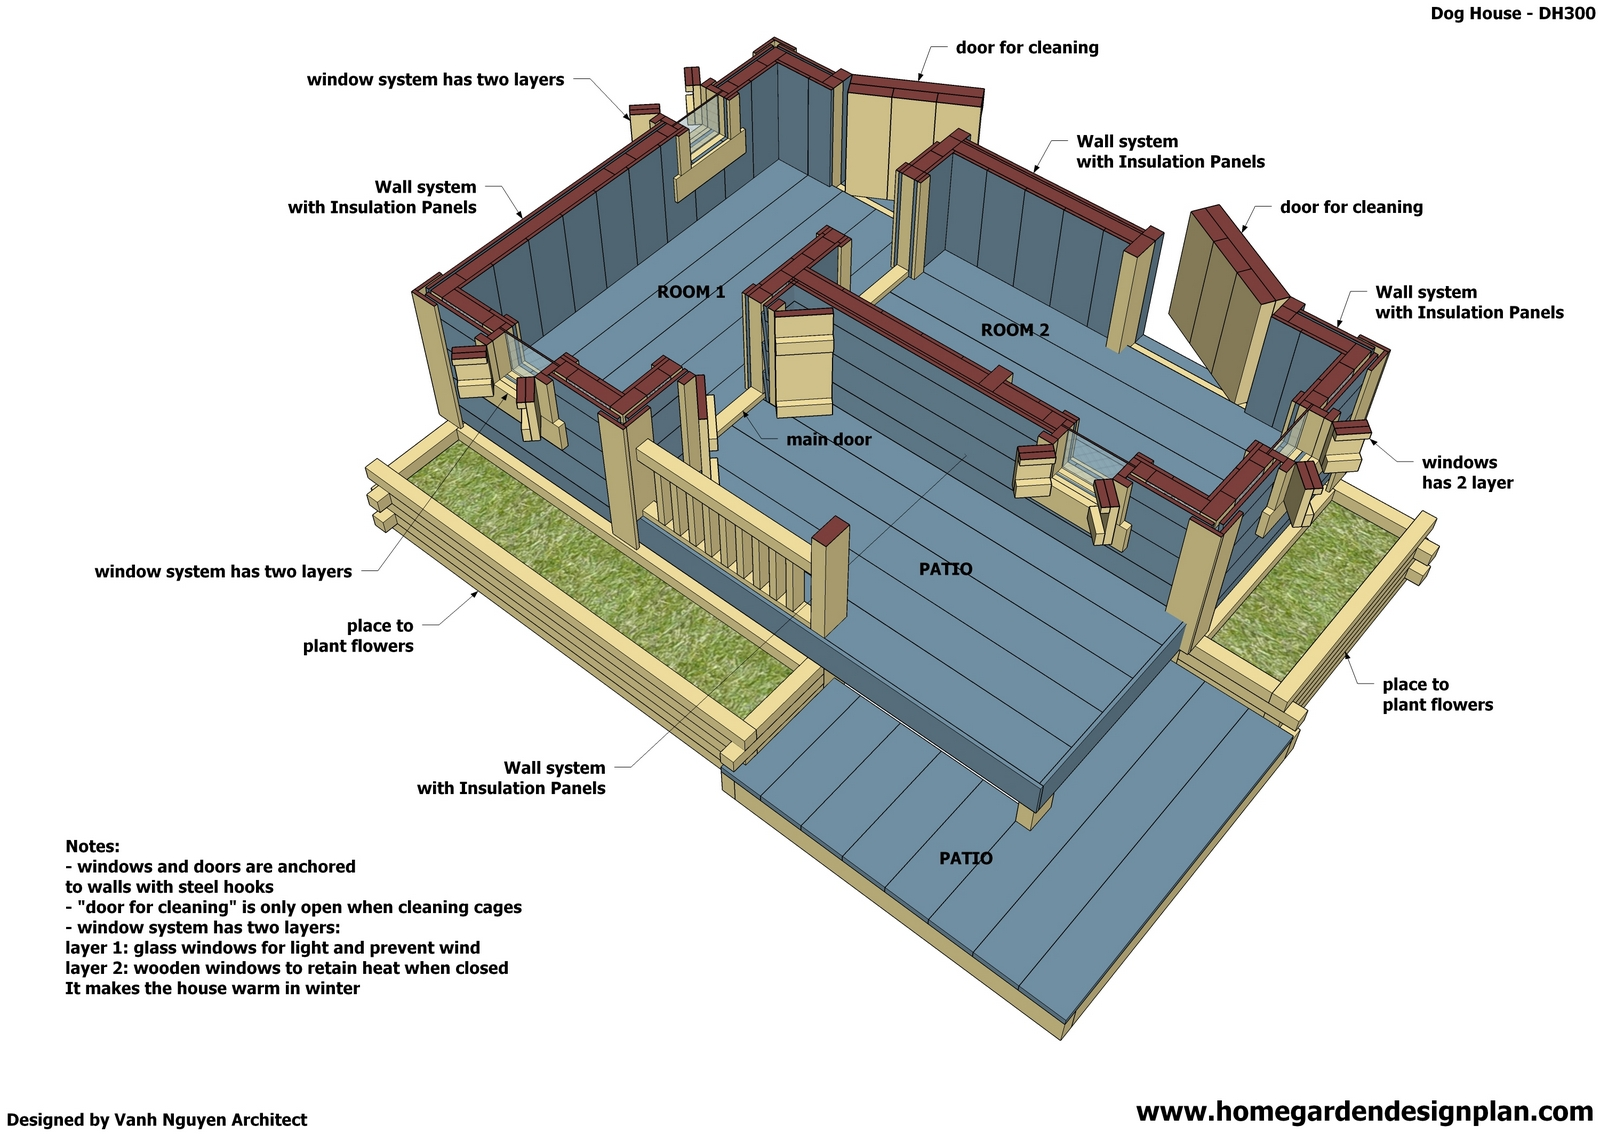 Woodwork 2 dog house plans free pdf plans Build a house online